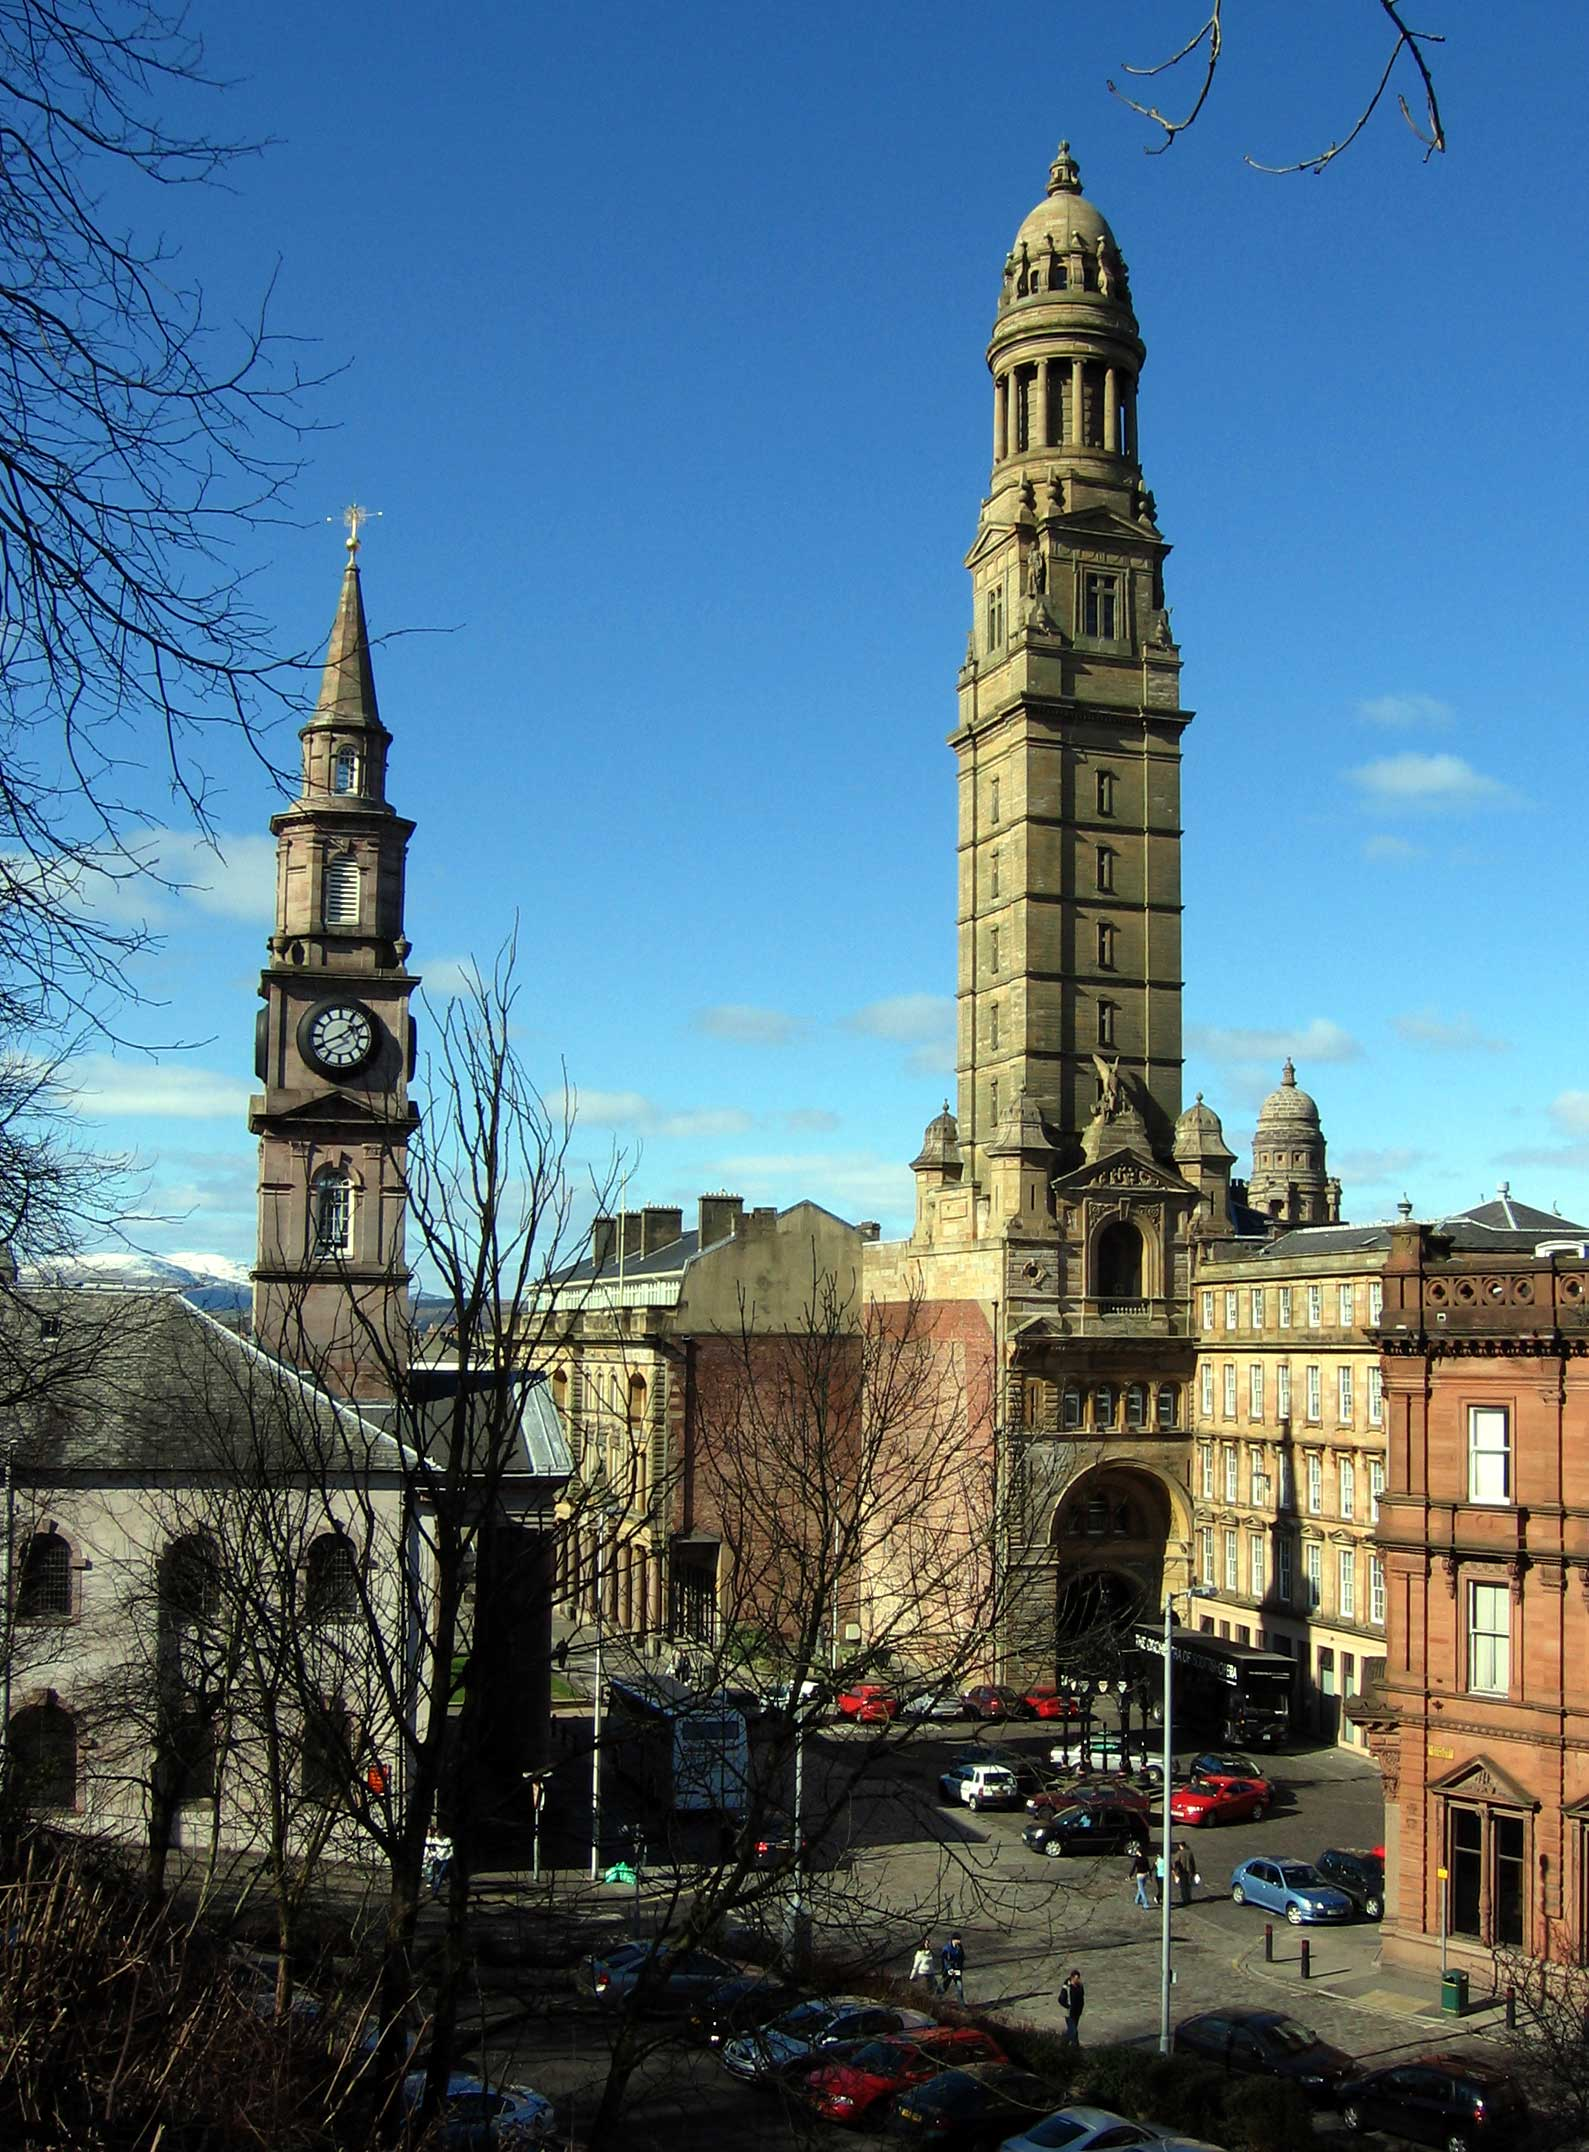 The council is based at the Municipal Buildings in Greenock.